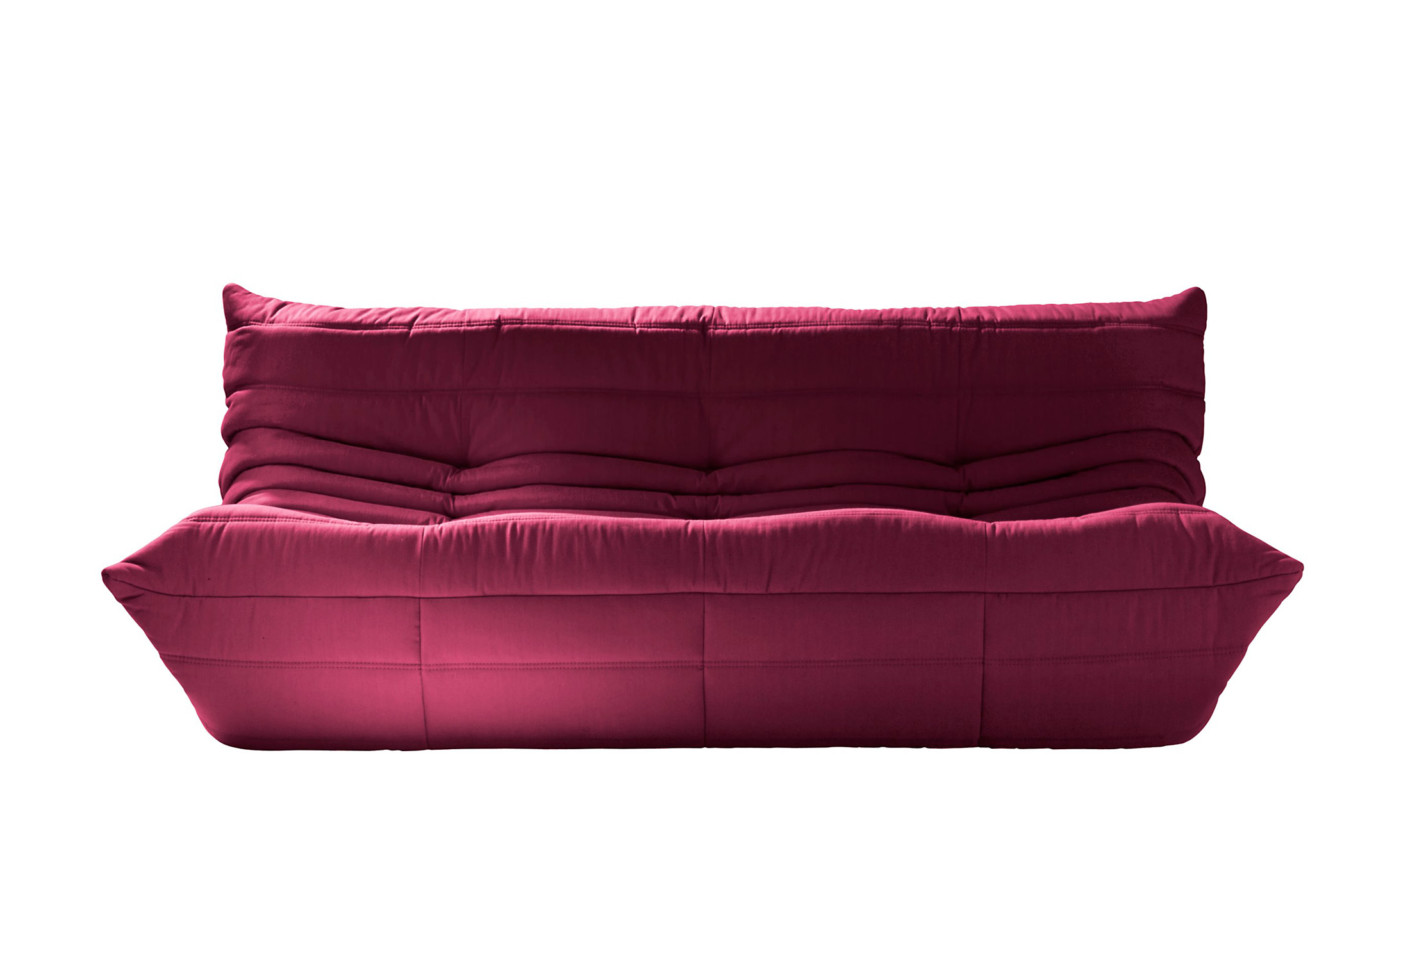 Sofa Protection Cover Images